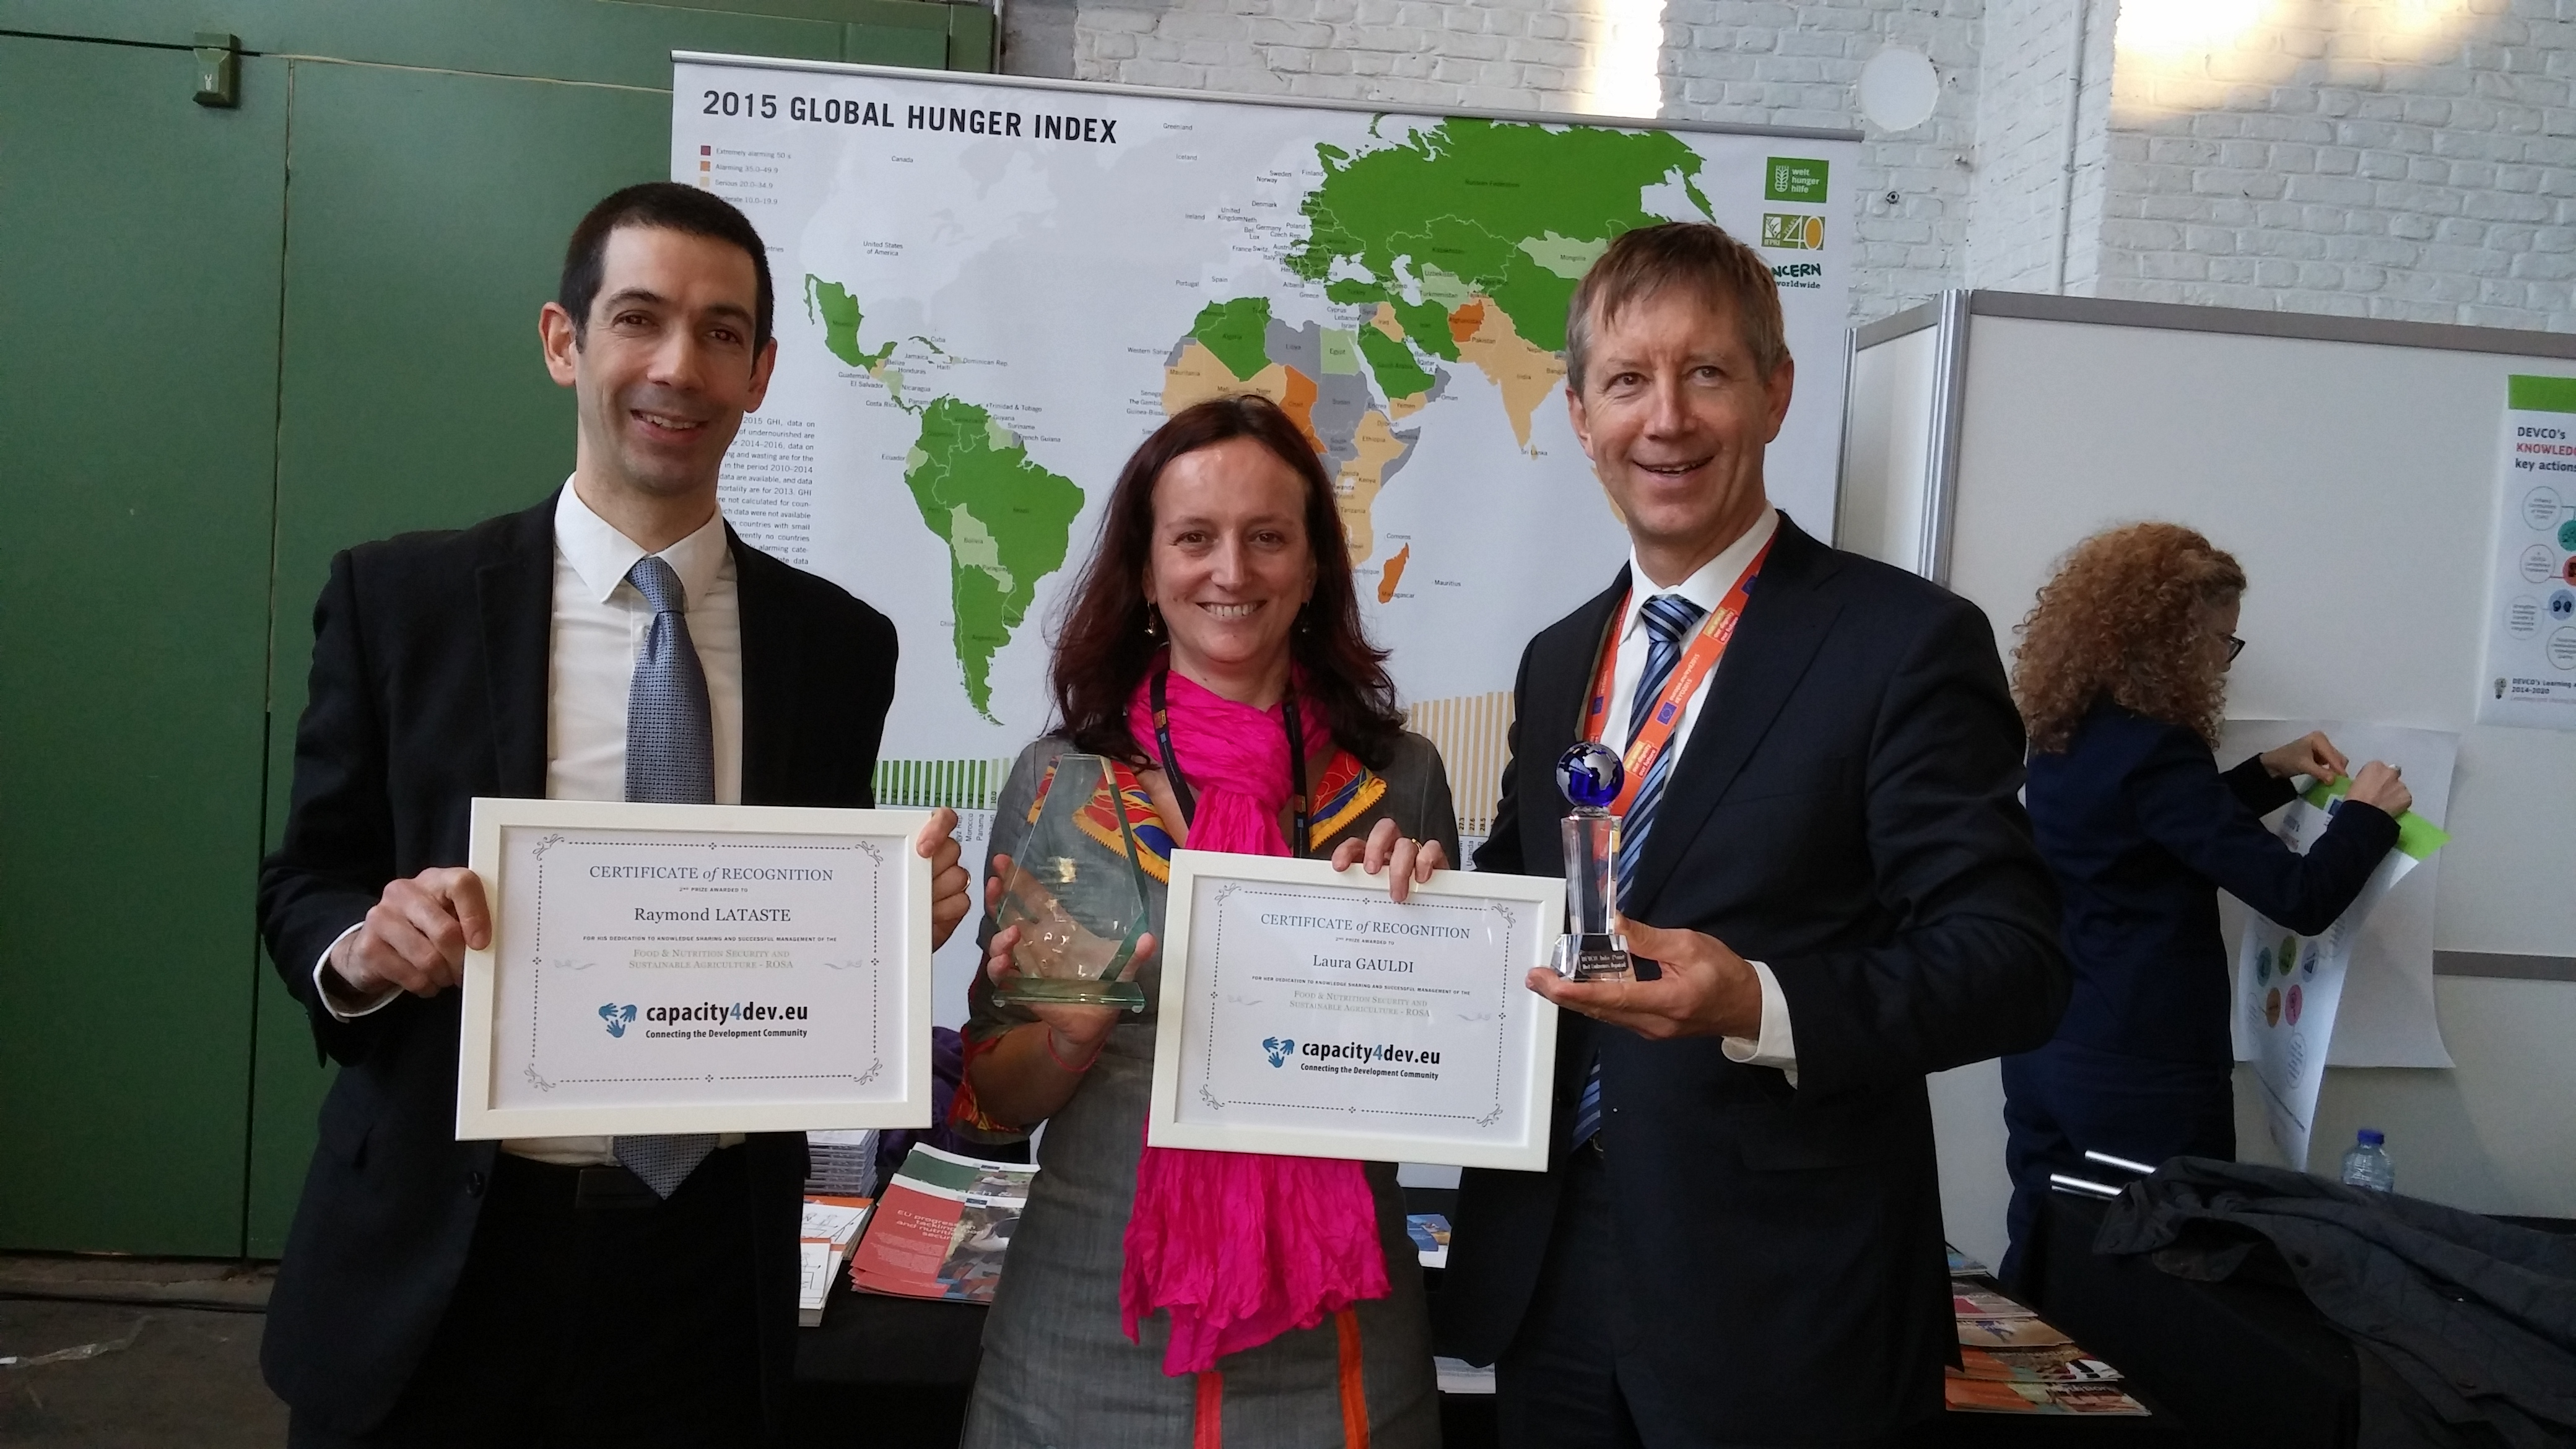 Award for the Operational Food Security Network